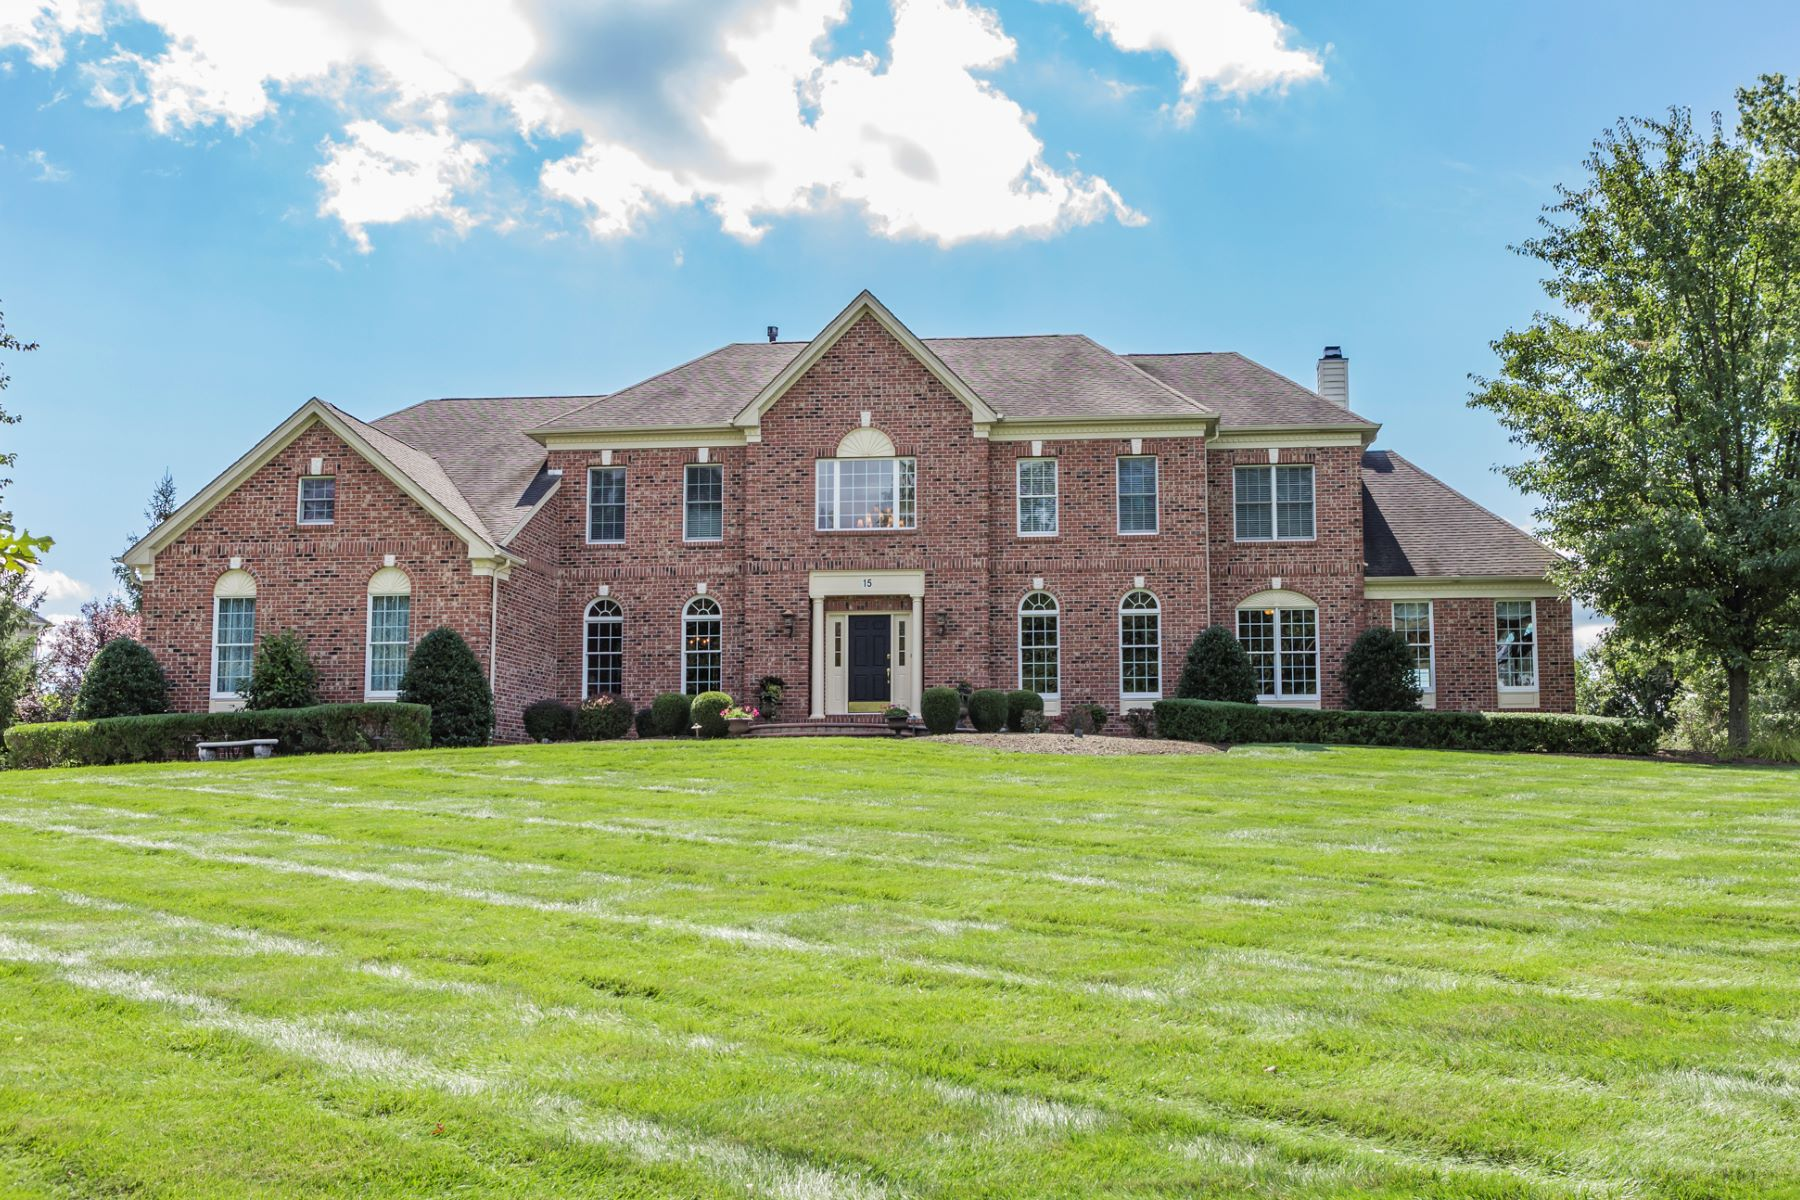 Casa Unifamiliar por un Venta en A Dream House Realized - Hopewell Township 15 Baker Way Pennington, Nueva Jersey 08534 Estados UnidosEn/Alrededor: Hopewell Township